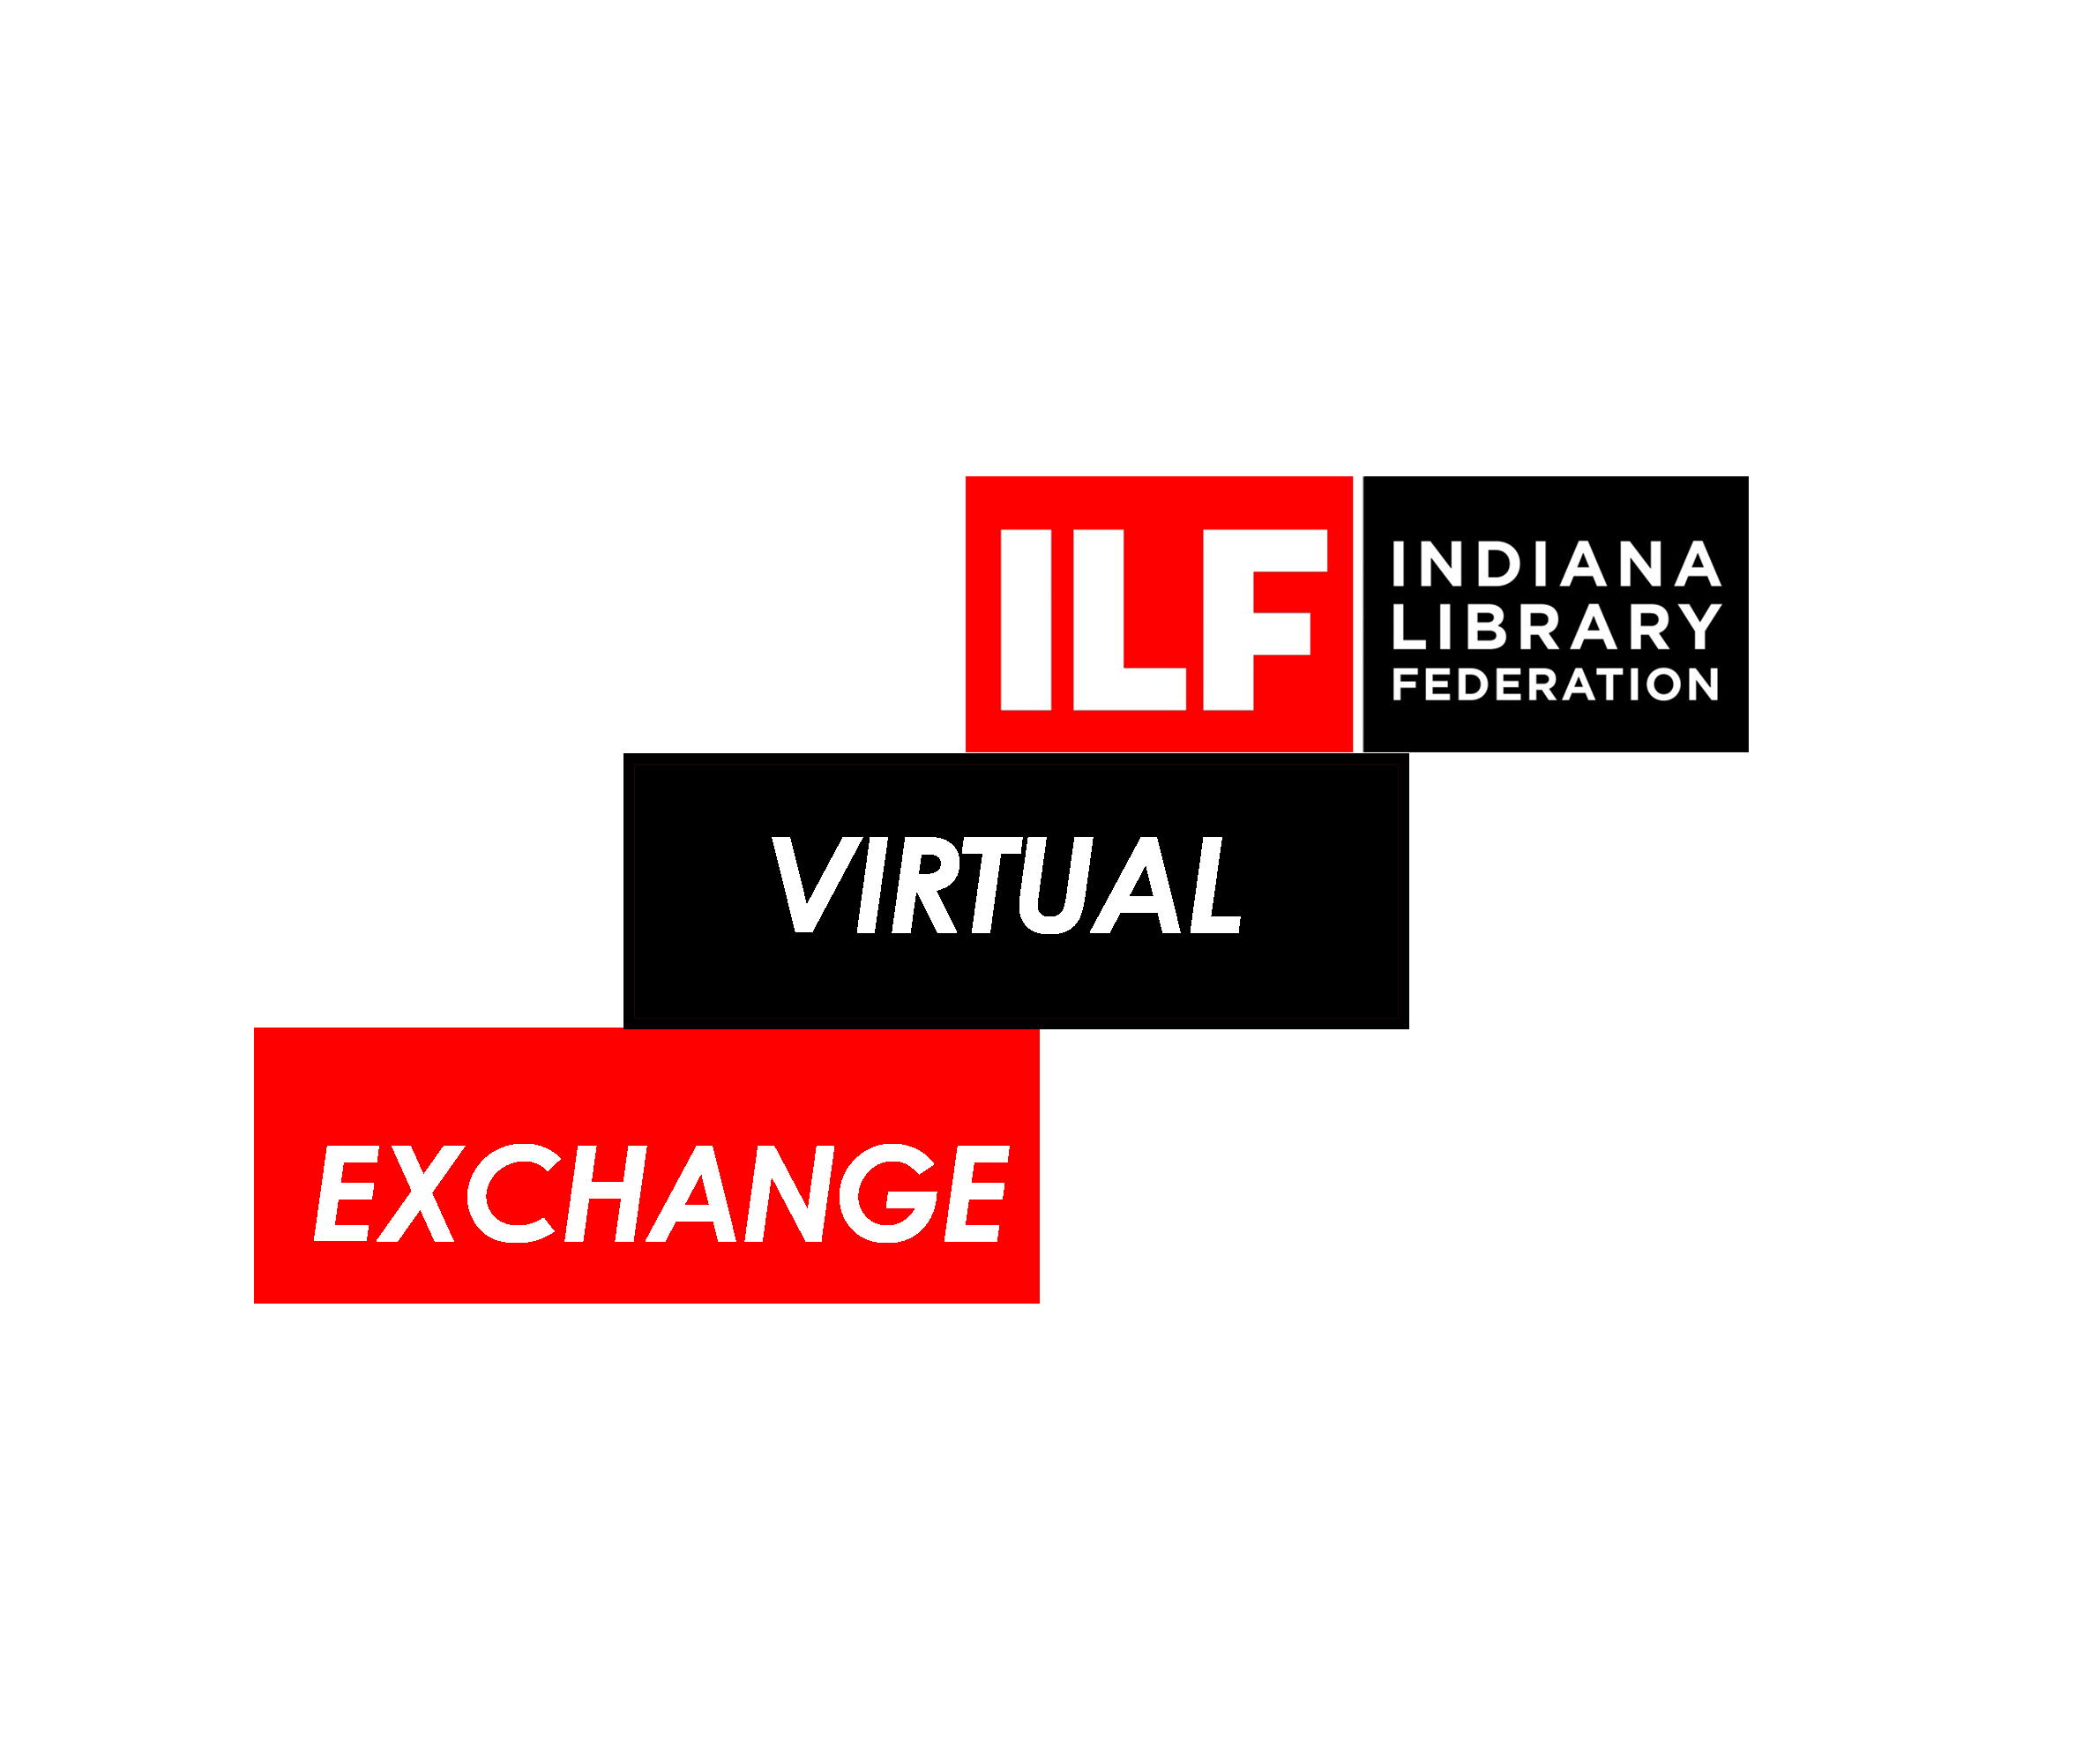 ILF Virtual Exchange logo